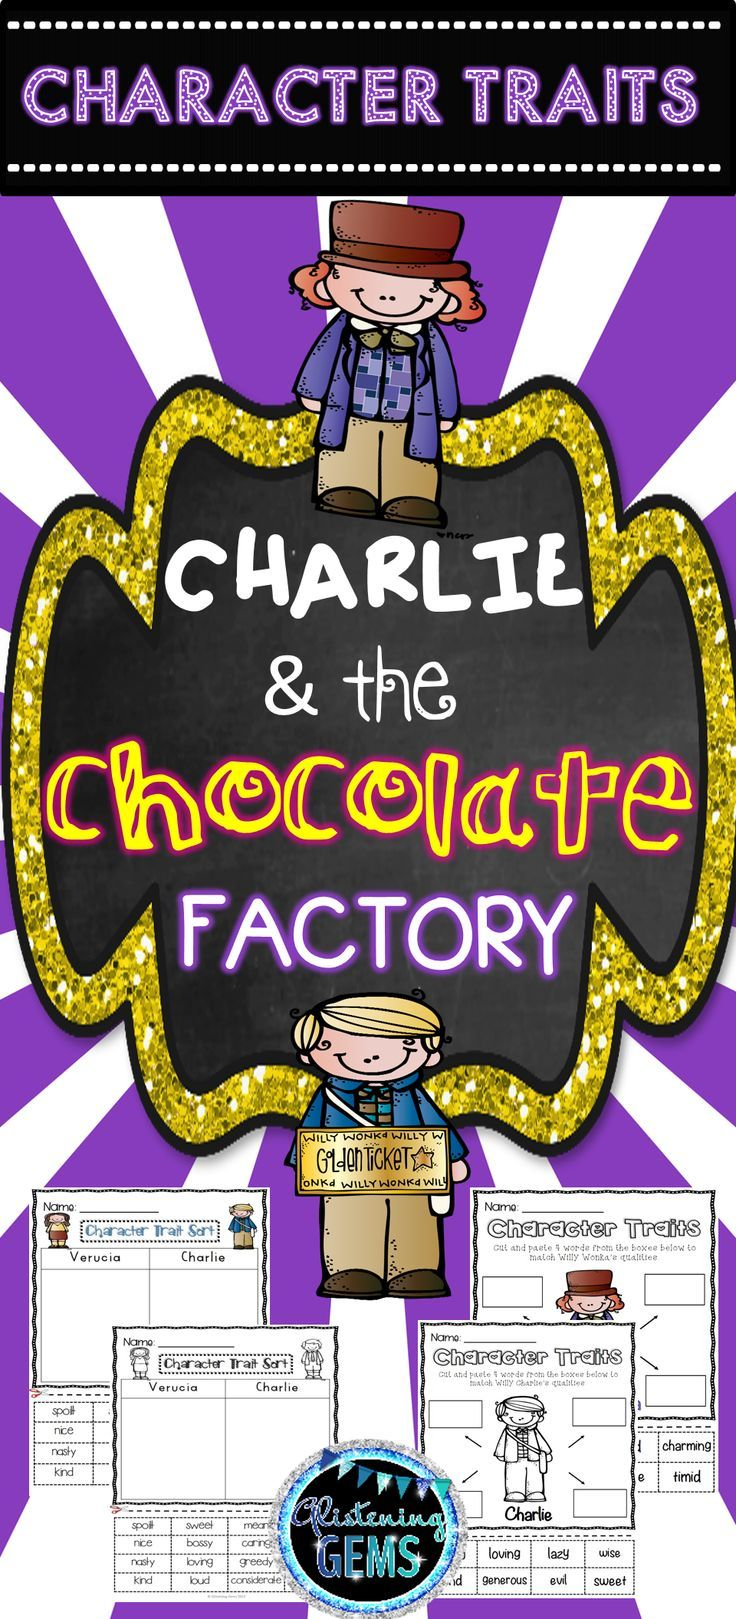 51 best Charlie and the Chocolate Factory images on Pinterest ...